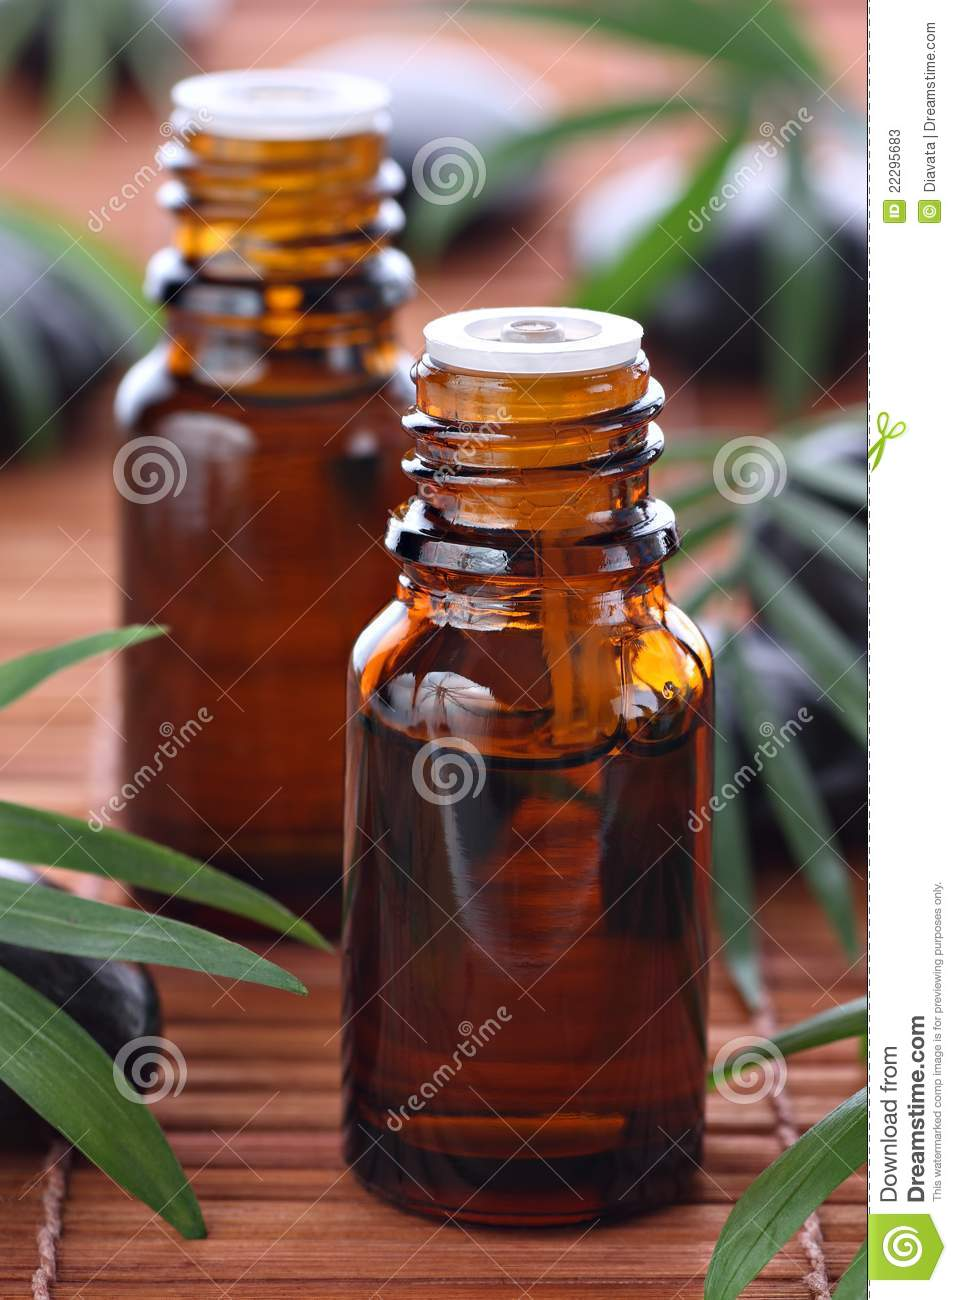 Aromatherapy, essential oil bottles